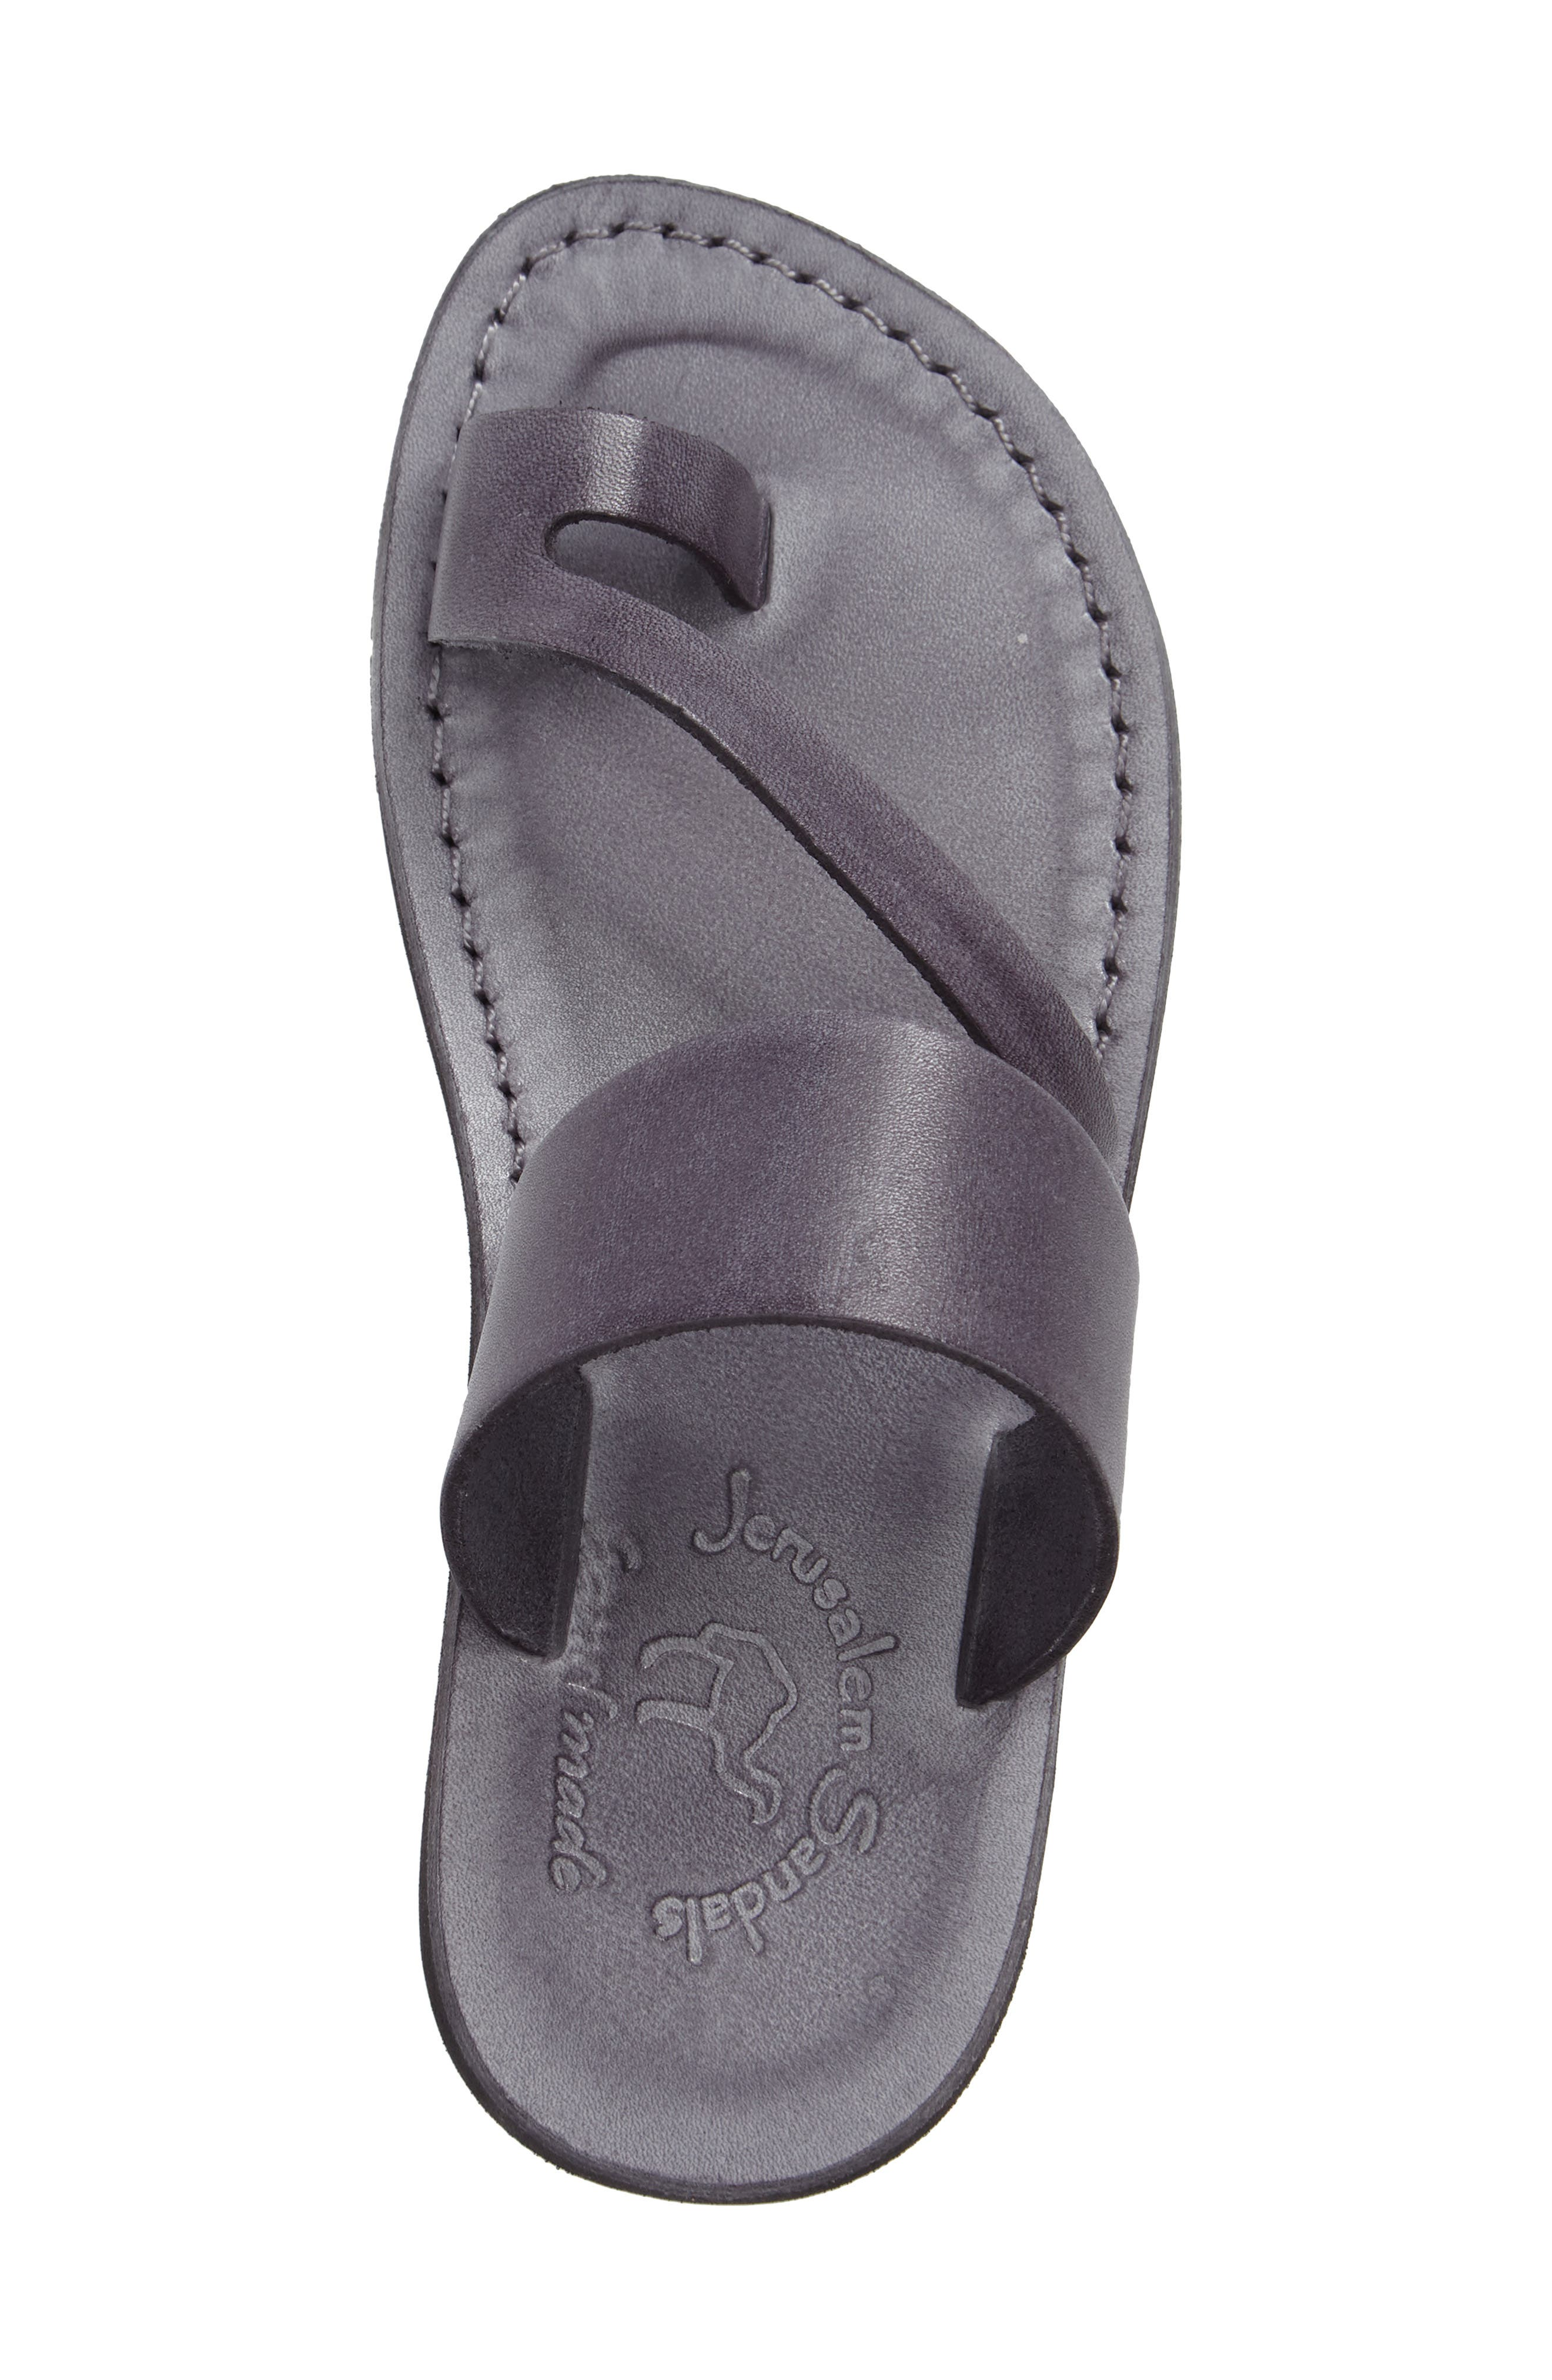 'Zohar' Leather Sandal,                             Alternate thumbnail 3, color,                             Grey Leather